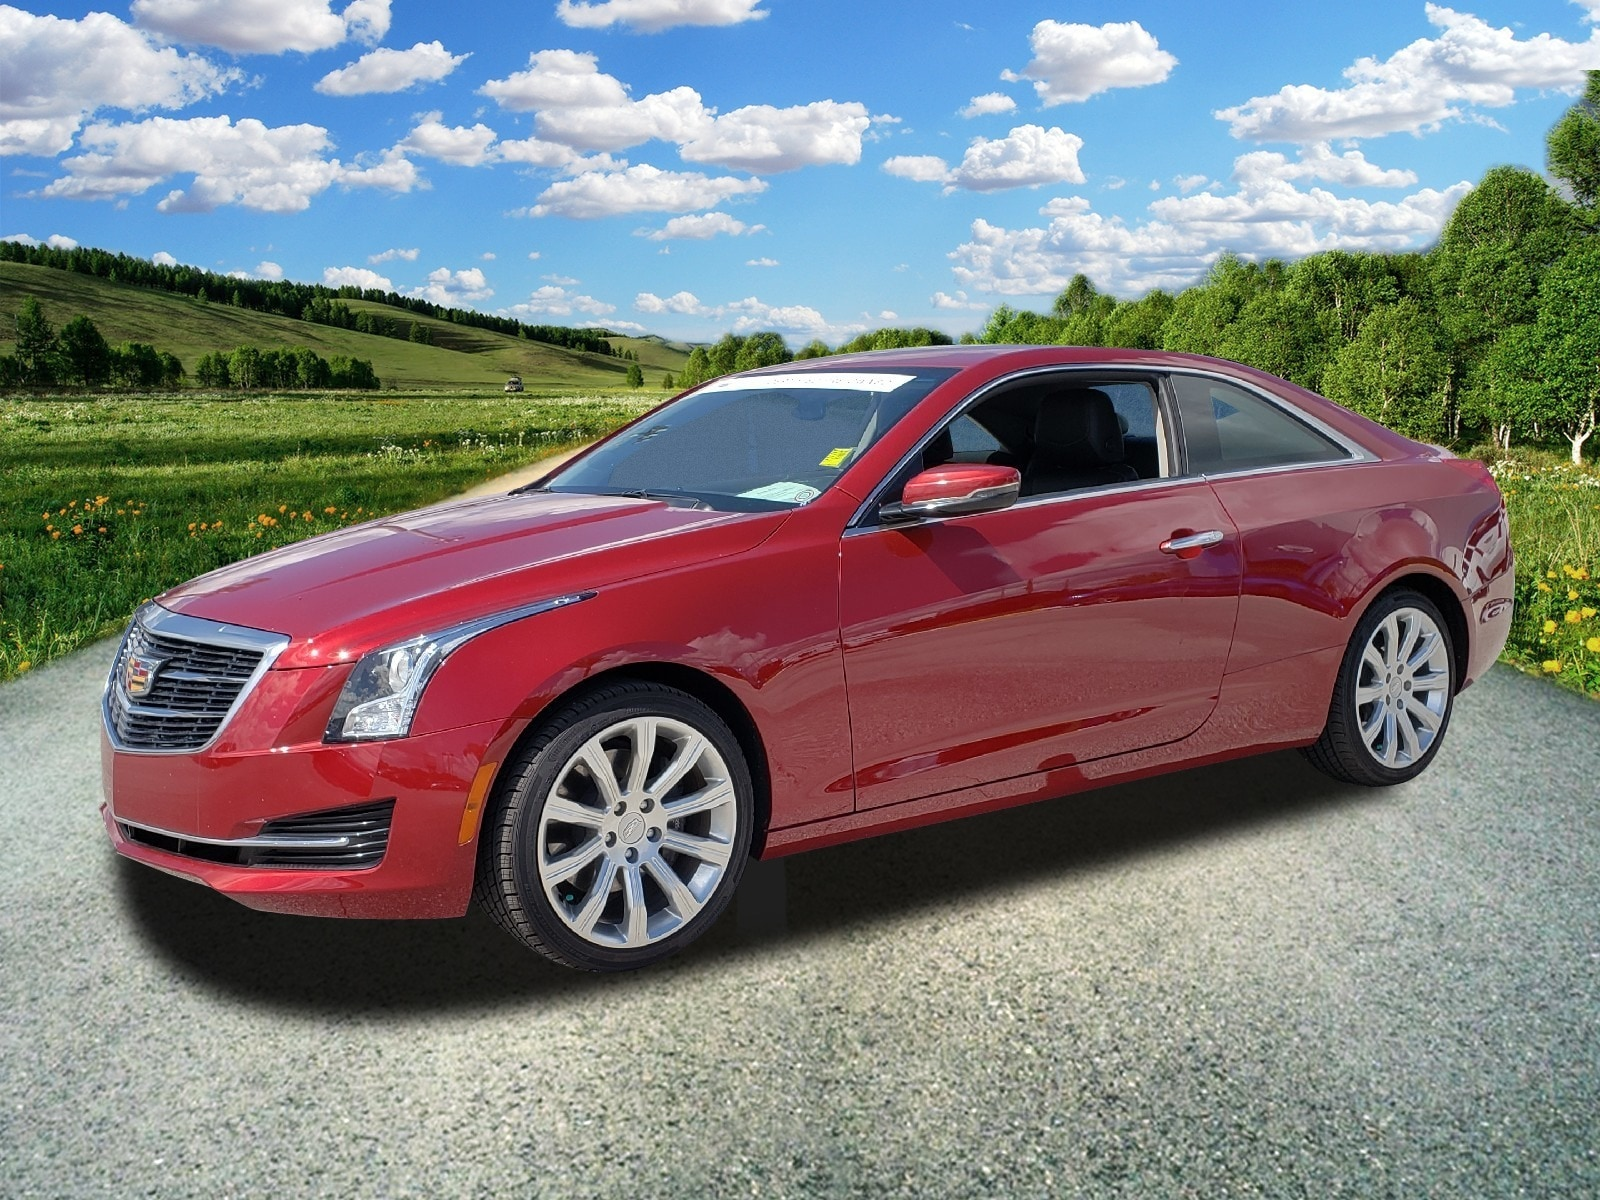 2017 Cadillac ATS Coupe 2DR CPE 2.0L RWD Coupe